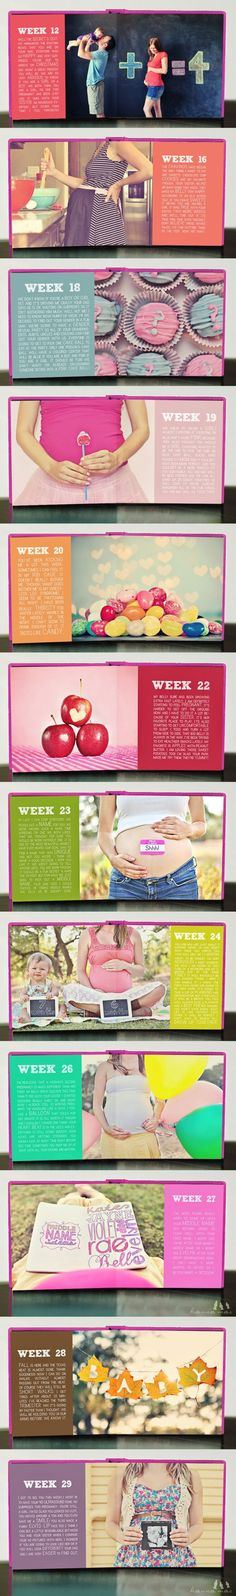 Make a book of weekly updates till baby comes! by Jennifer L Garcia